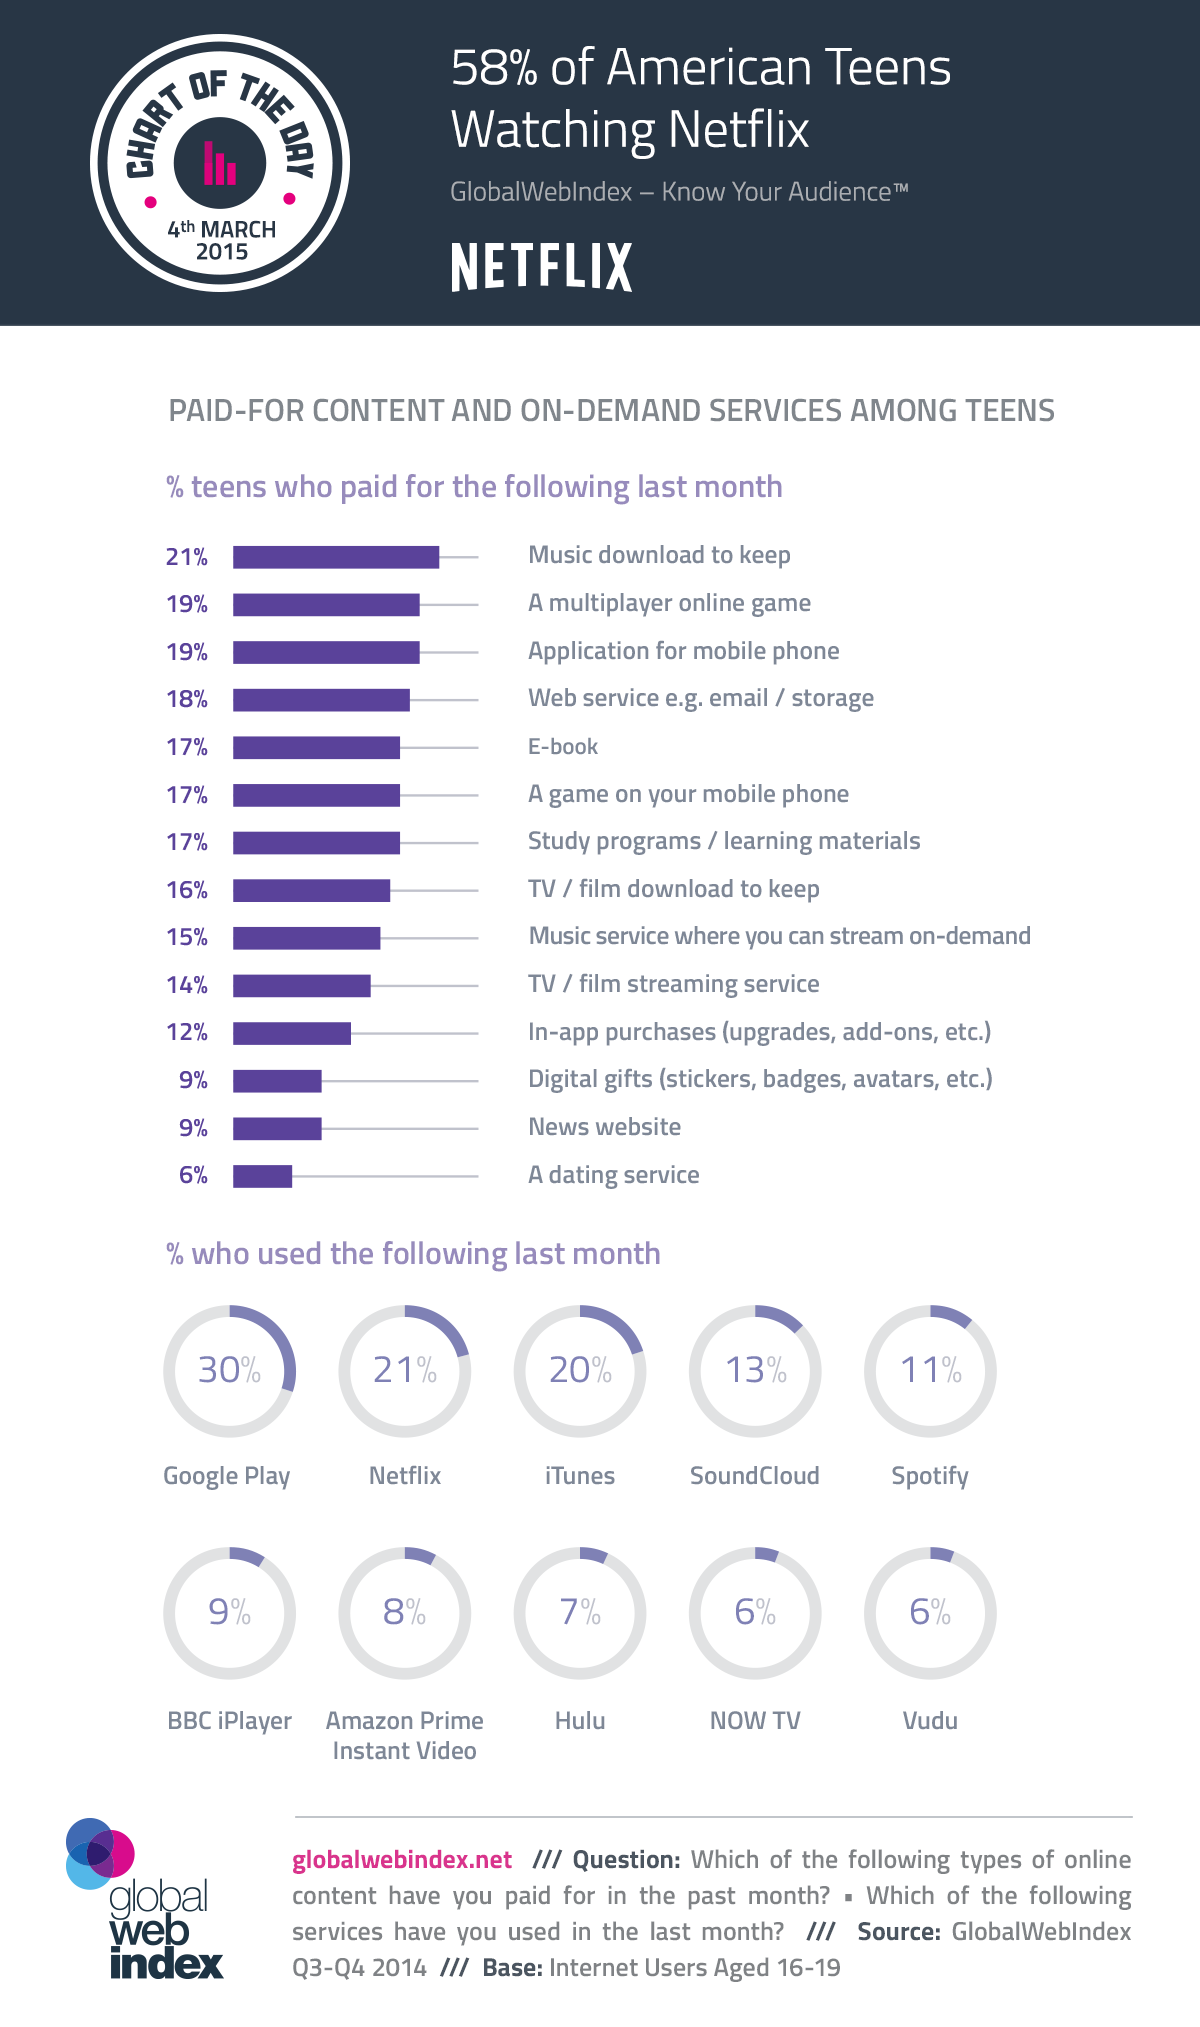 4th-March-2015-58-of-American-Teens-Watching-Netflix